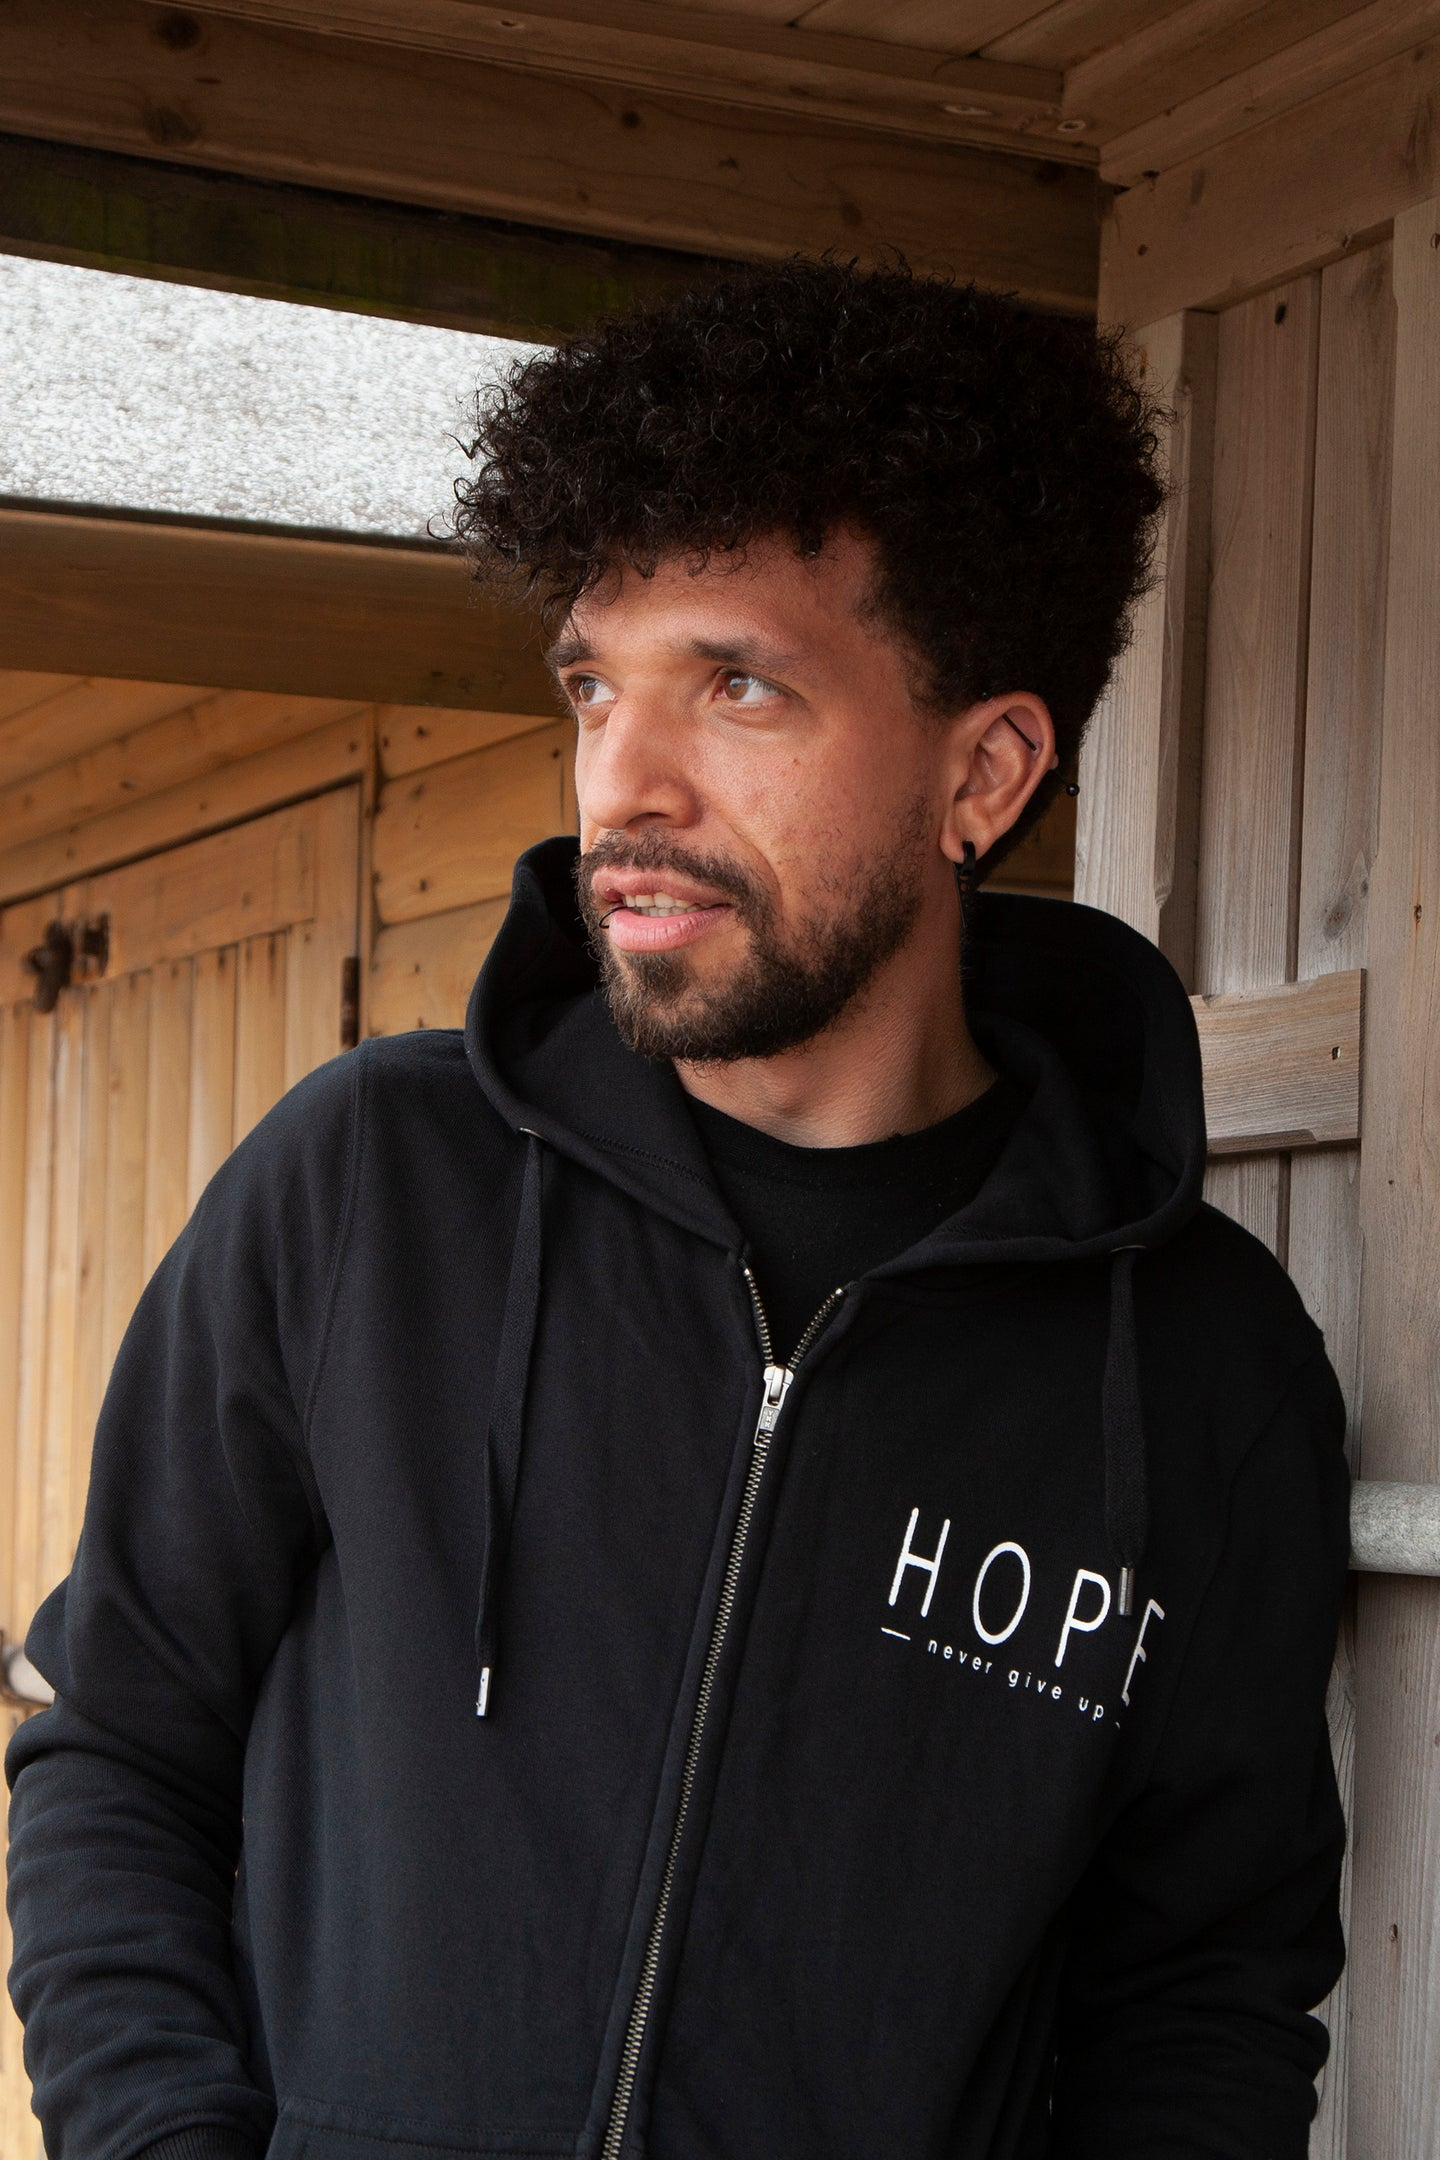 'Hope, never give up' Unisex Black Zip Hoodie